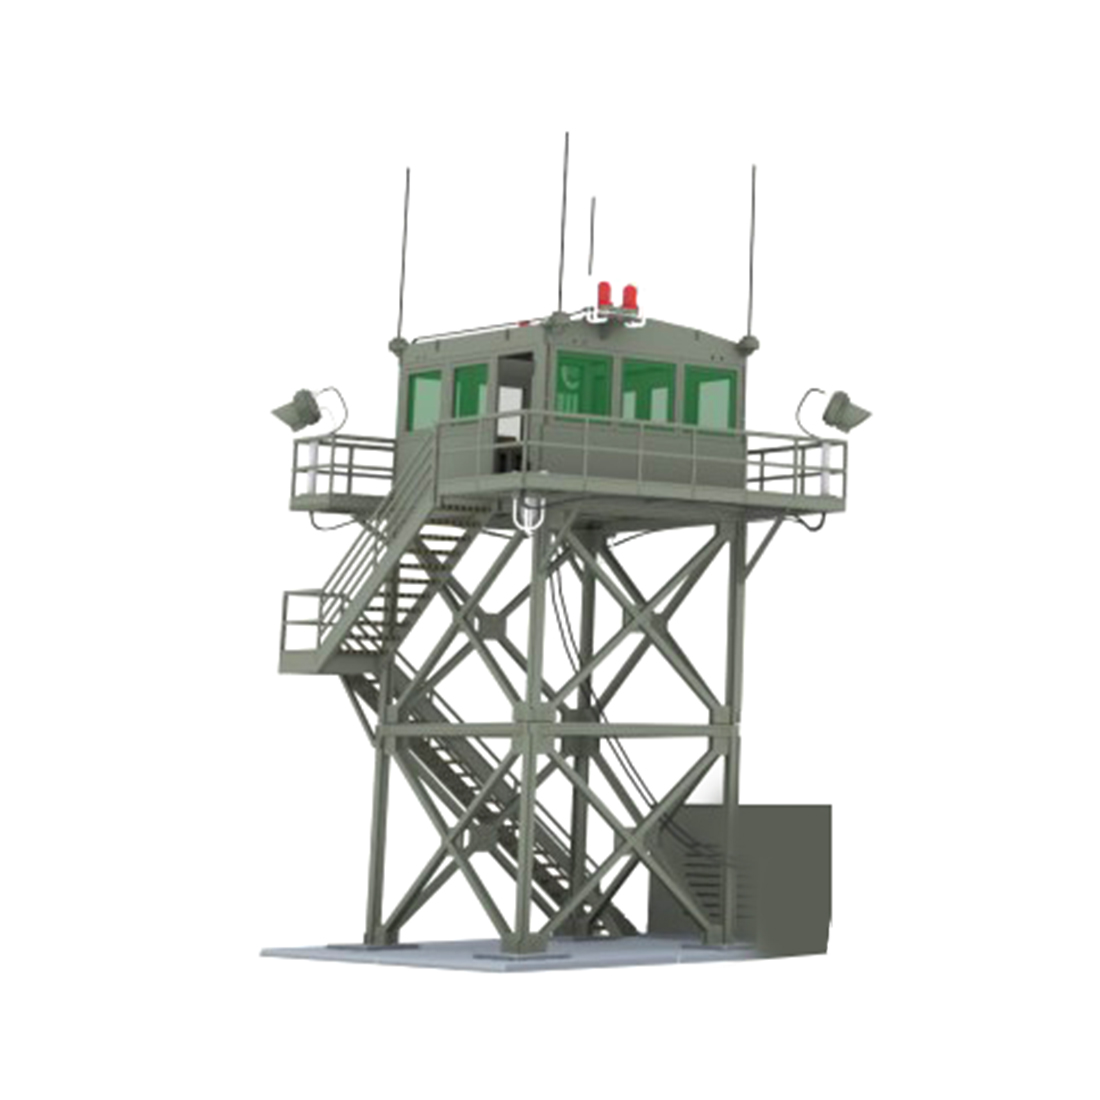 1:72 2-Storey Watchtower Model Sand Table Military Model Lookout Tower Bulk Decor Model Educational Toy Gift For Child Kid Adult